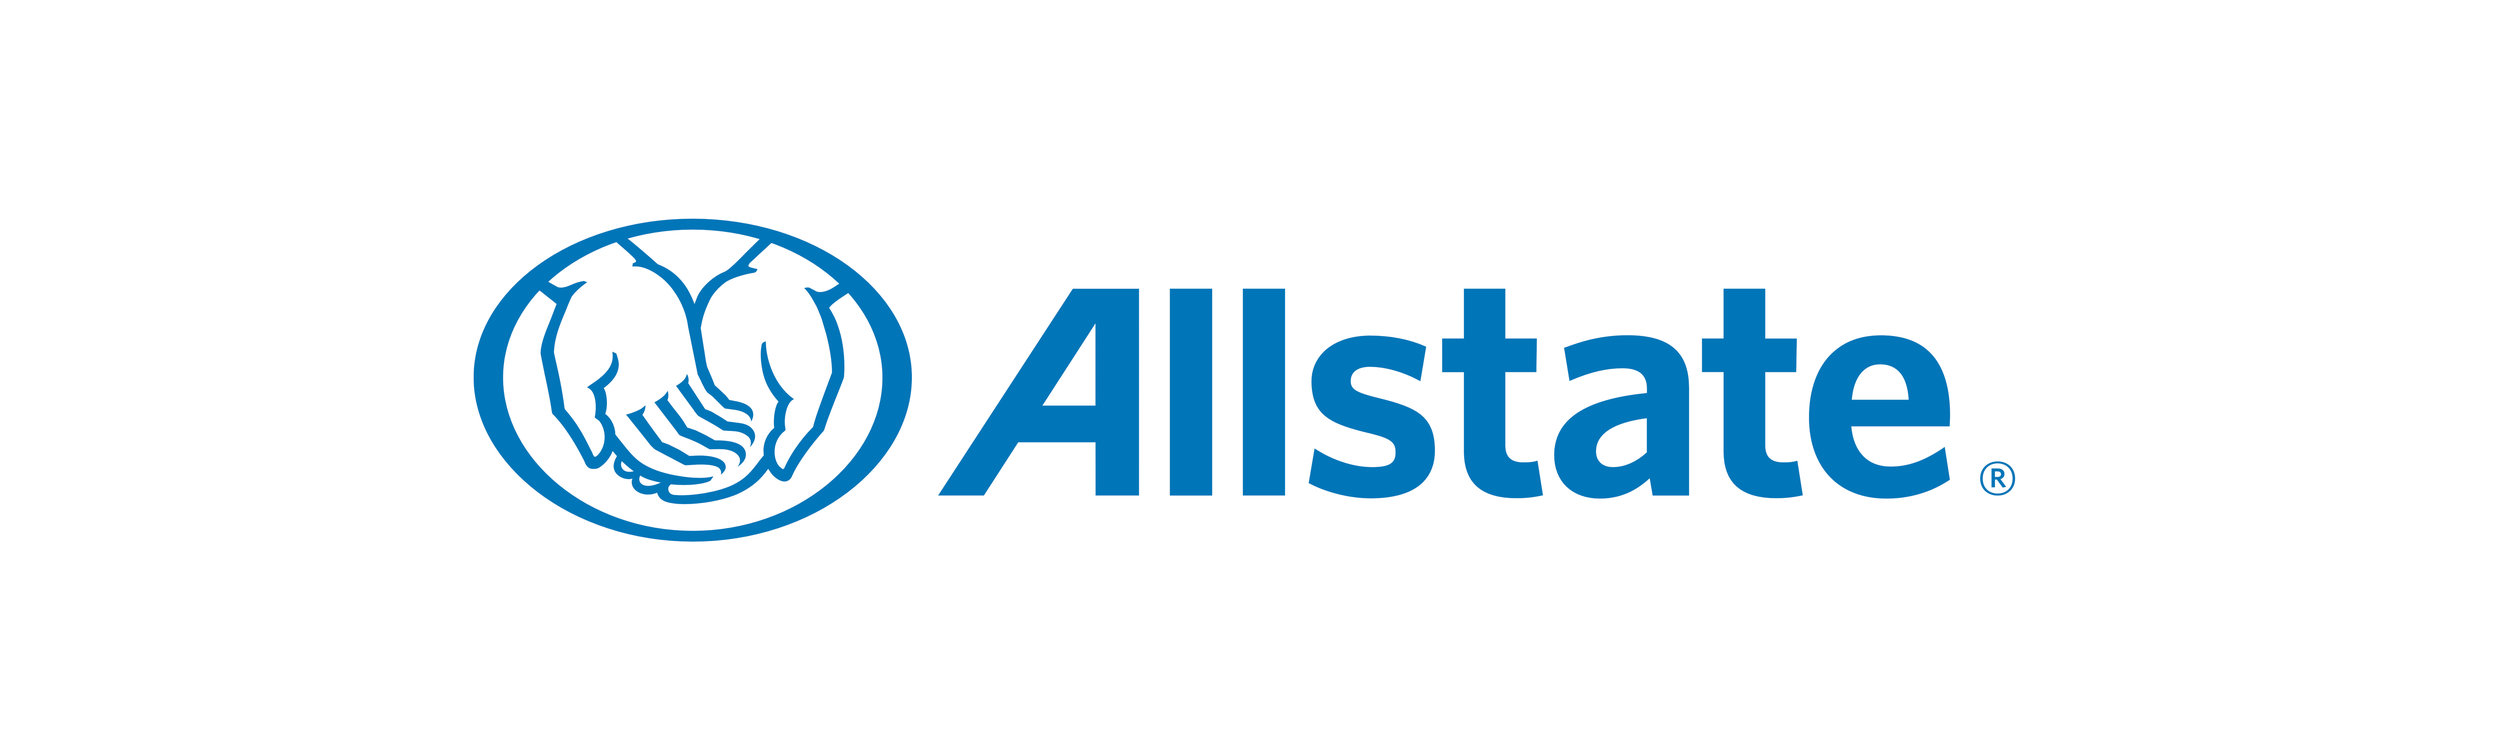 Allstate copy1jpg